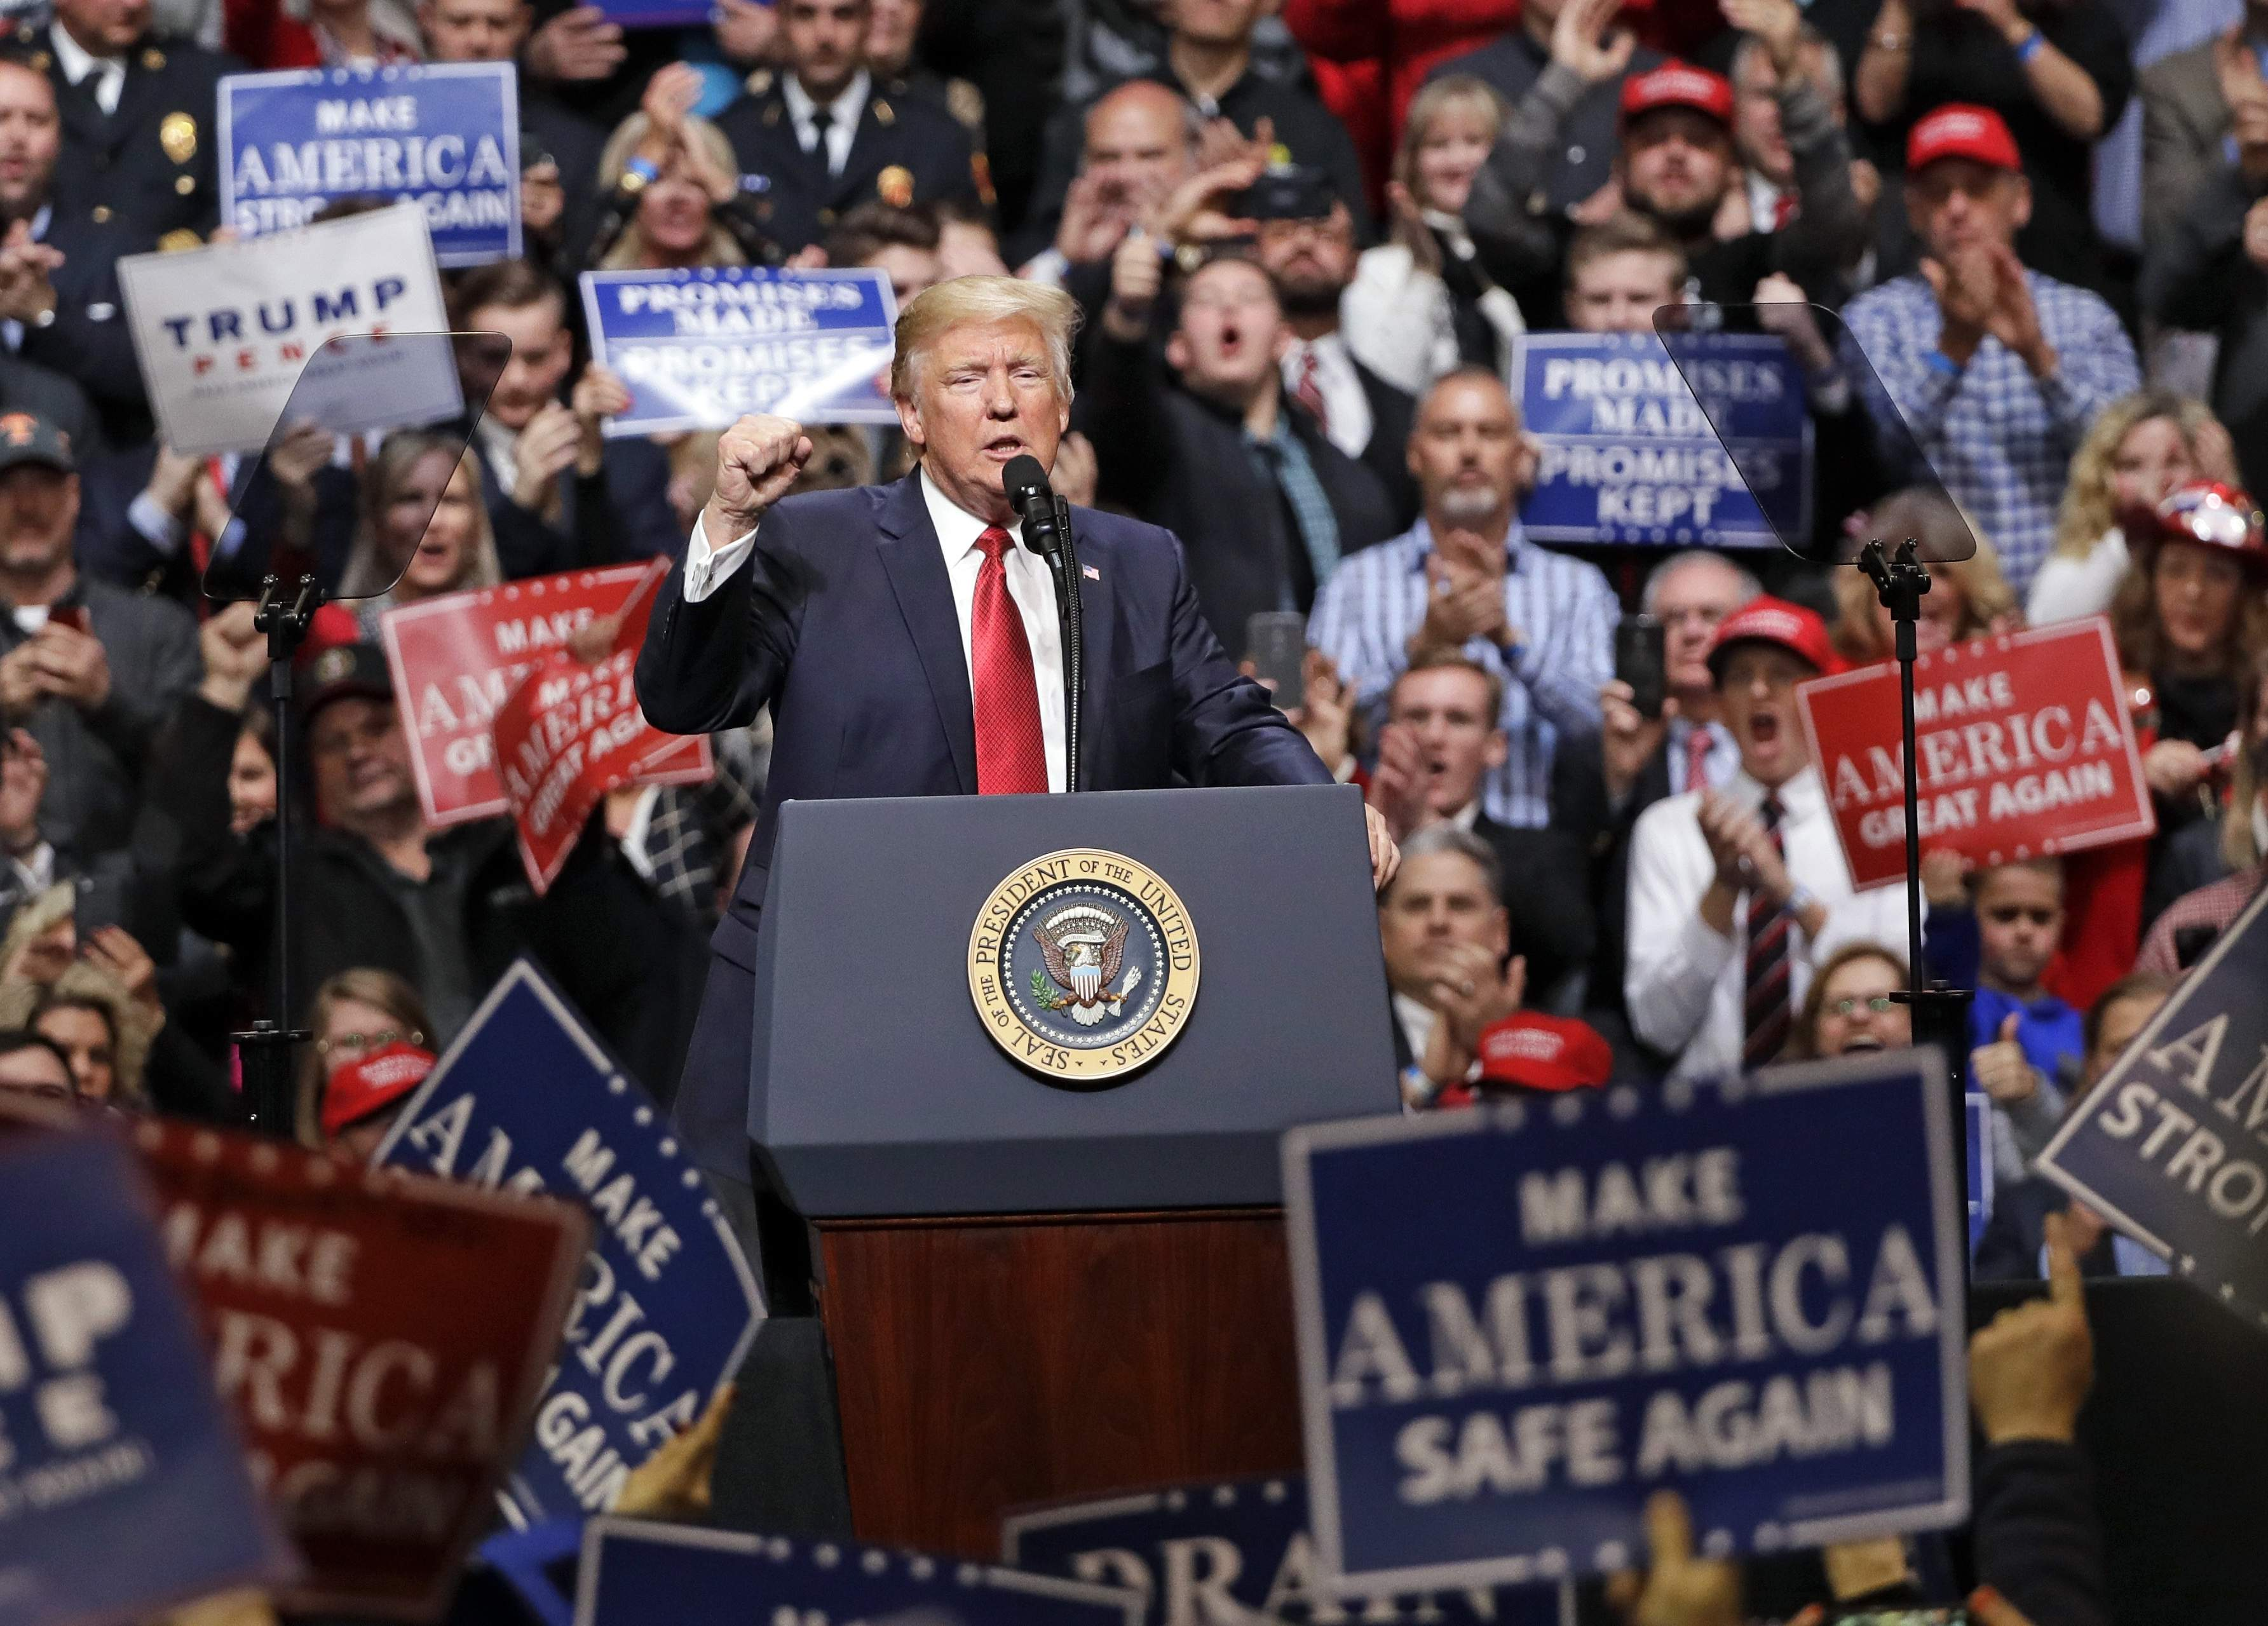 DAY 55 - In this March 15, 2017, file photo, President Donald Trump speaks at a rally in Nashville, Tenn. (AP Photo/Mark Humphrey, File)